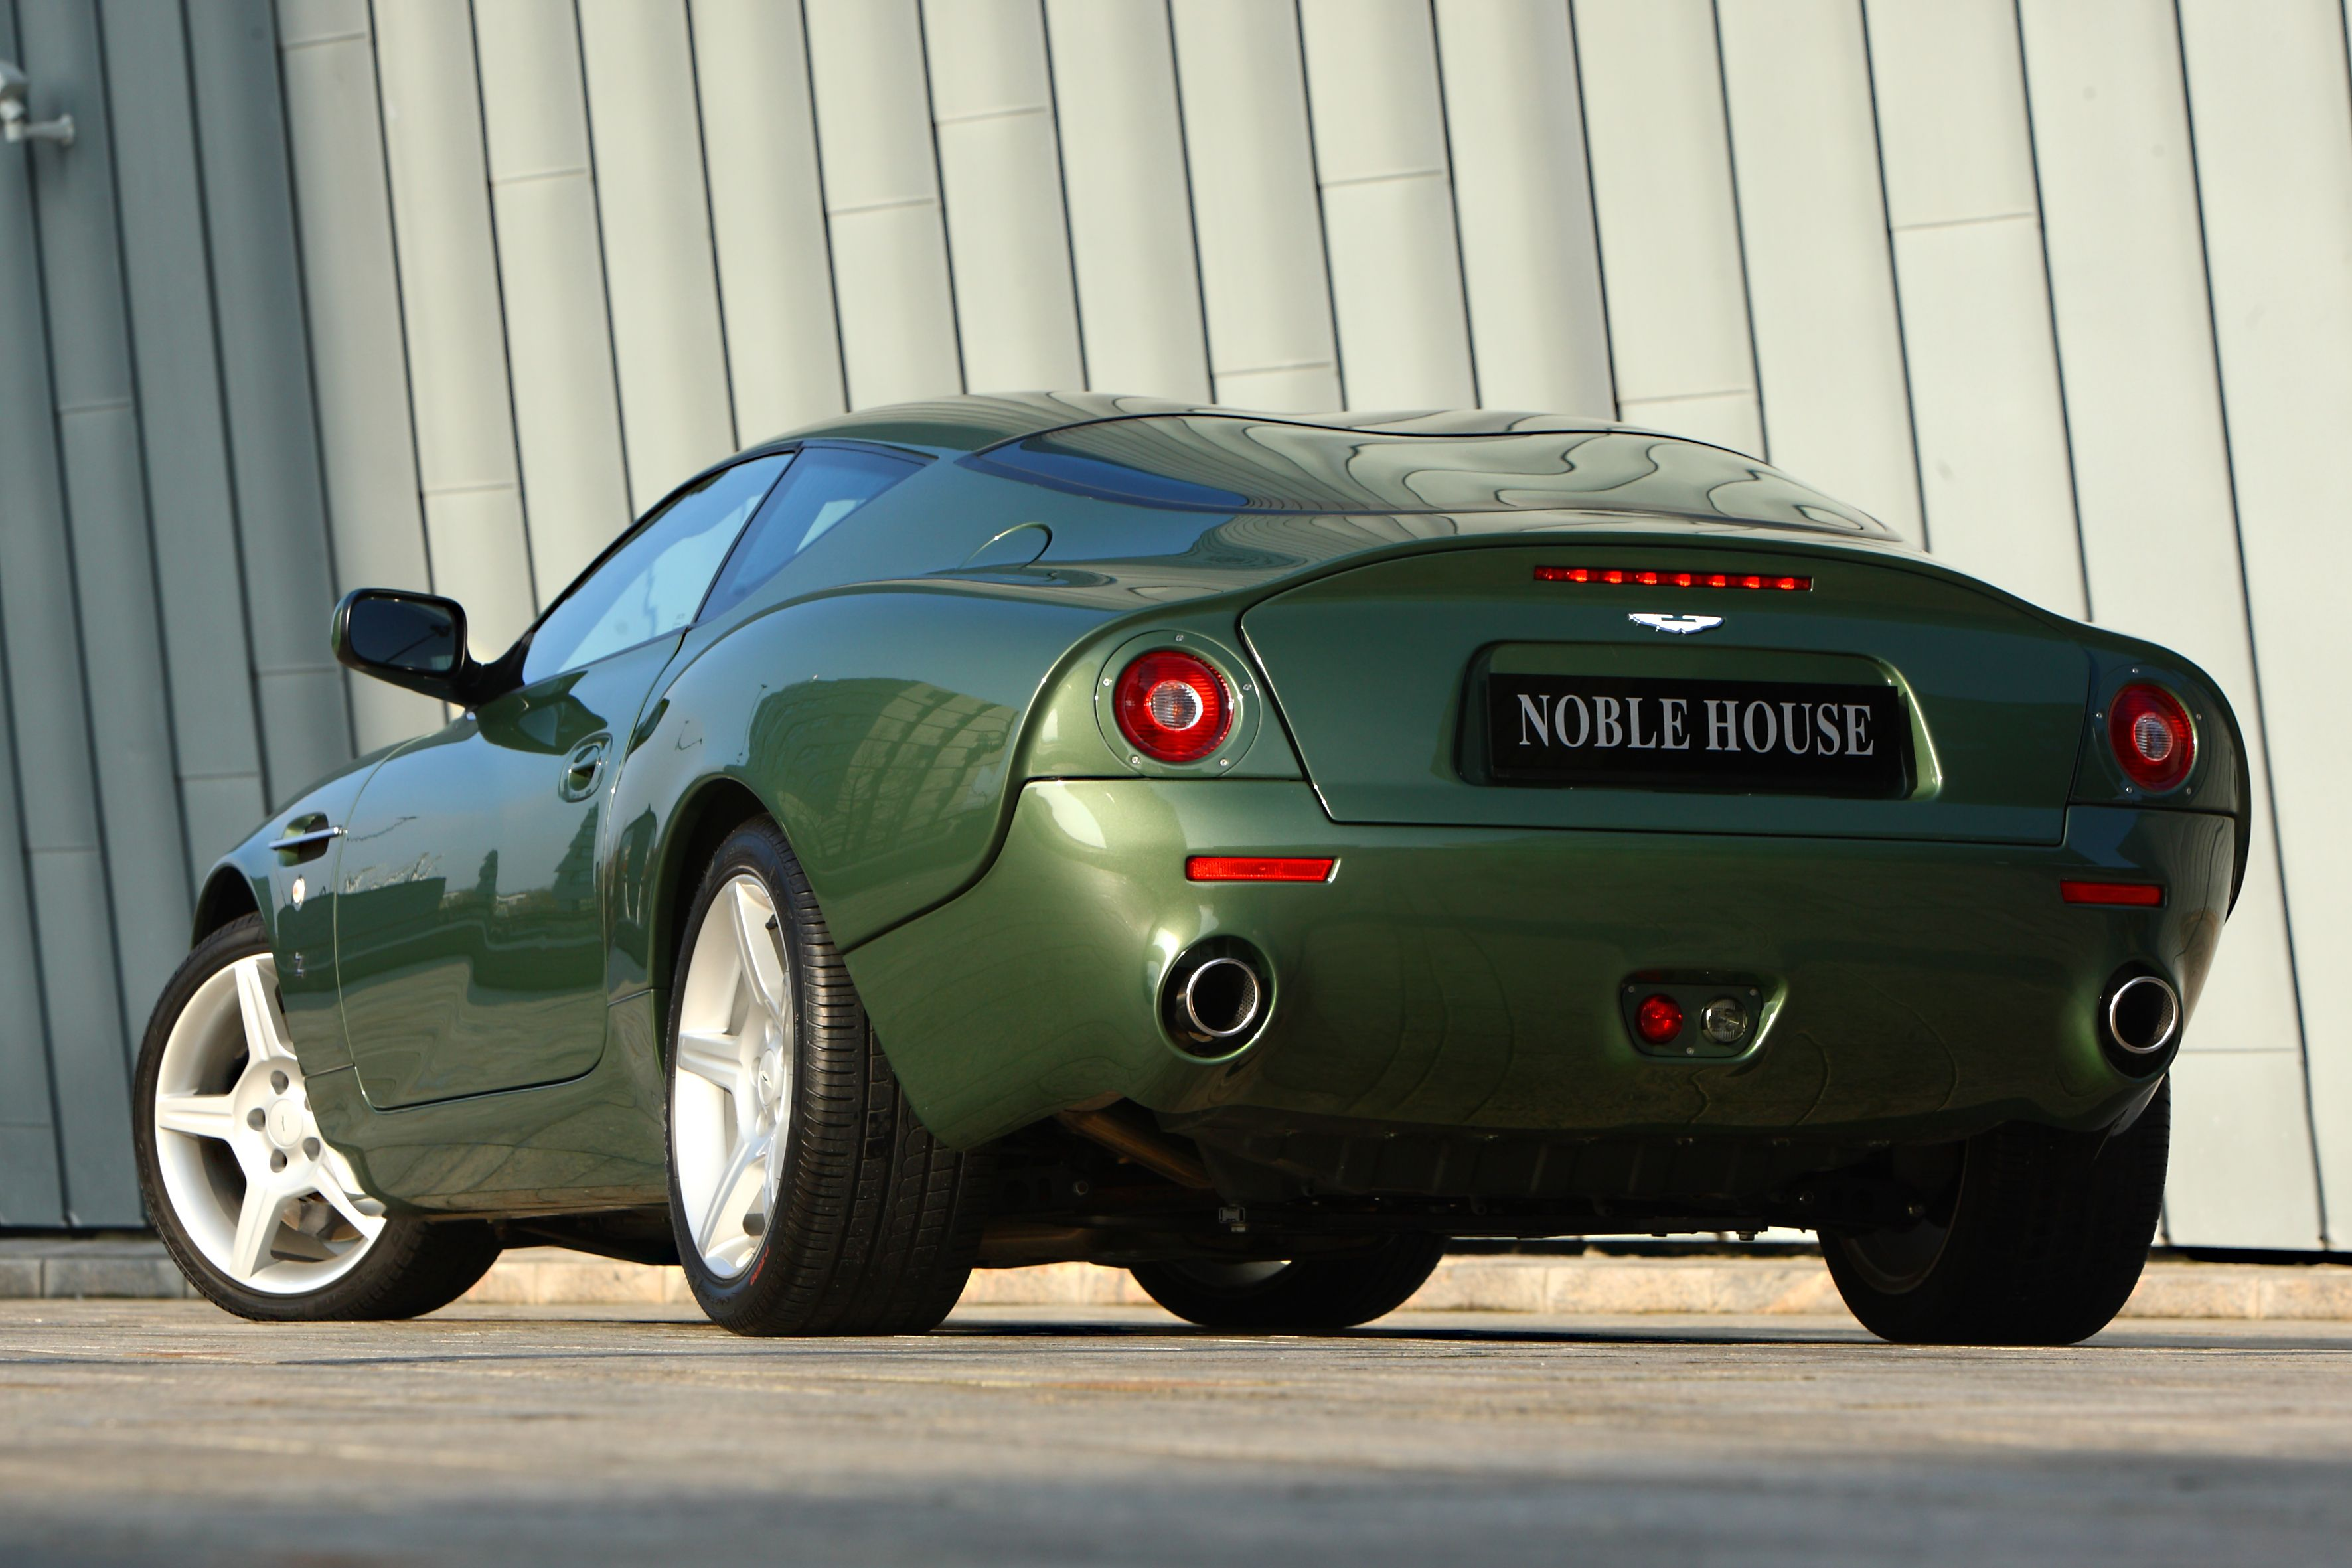 Currently offered for sale at Noble House Classics, a beautiful and stylish DB7 Zagato painted in the colour with the name DB4GT Zagato green.